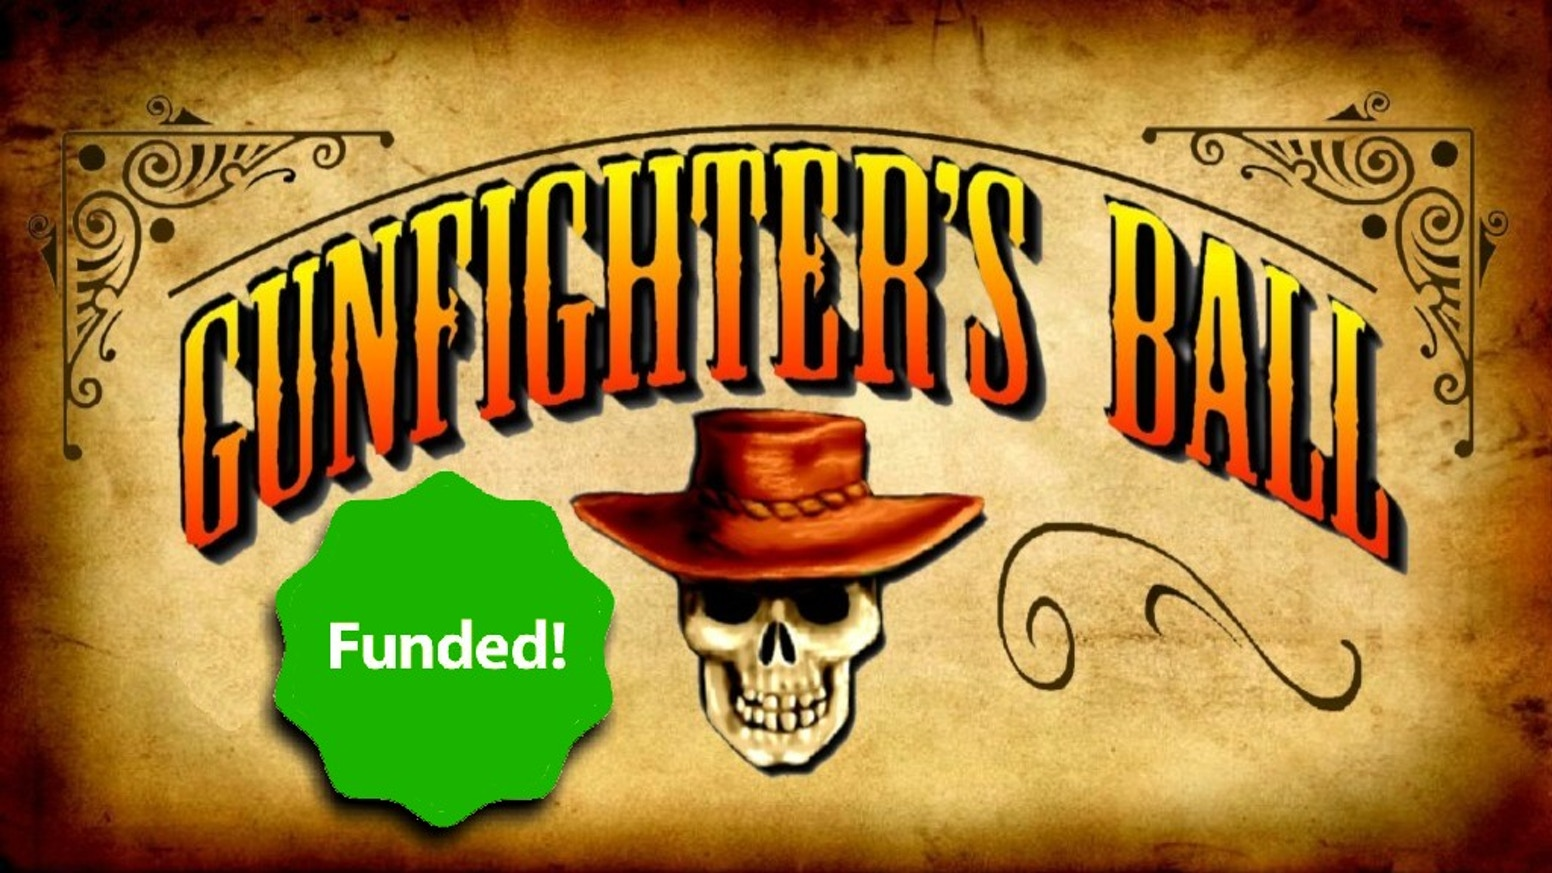 Gunfighter's Ball is a Wild West tabletop miniatures game for 2-12 players featuring cutting-edge miniatures and terrain.